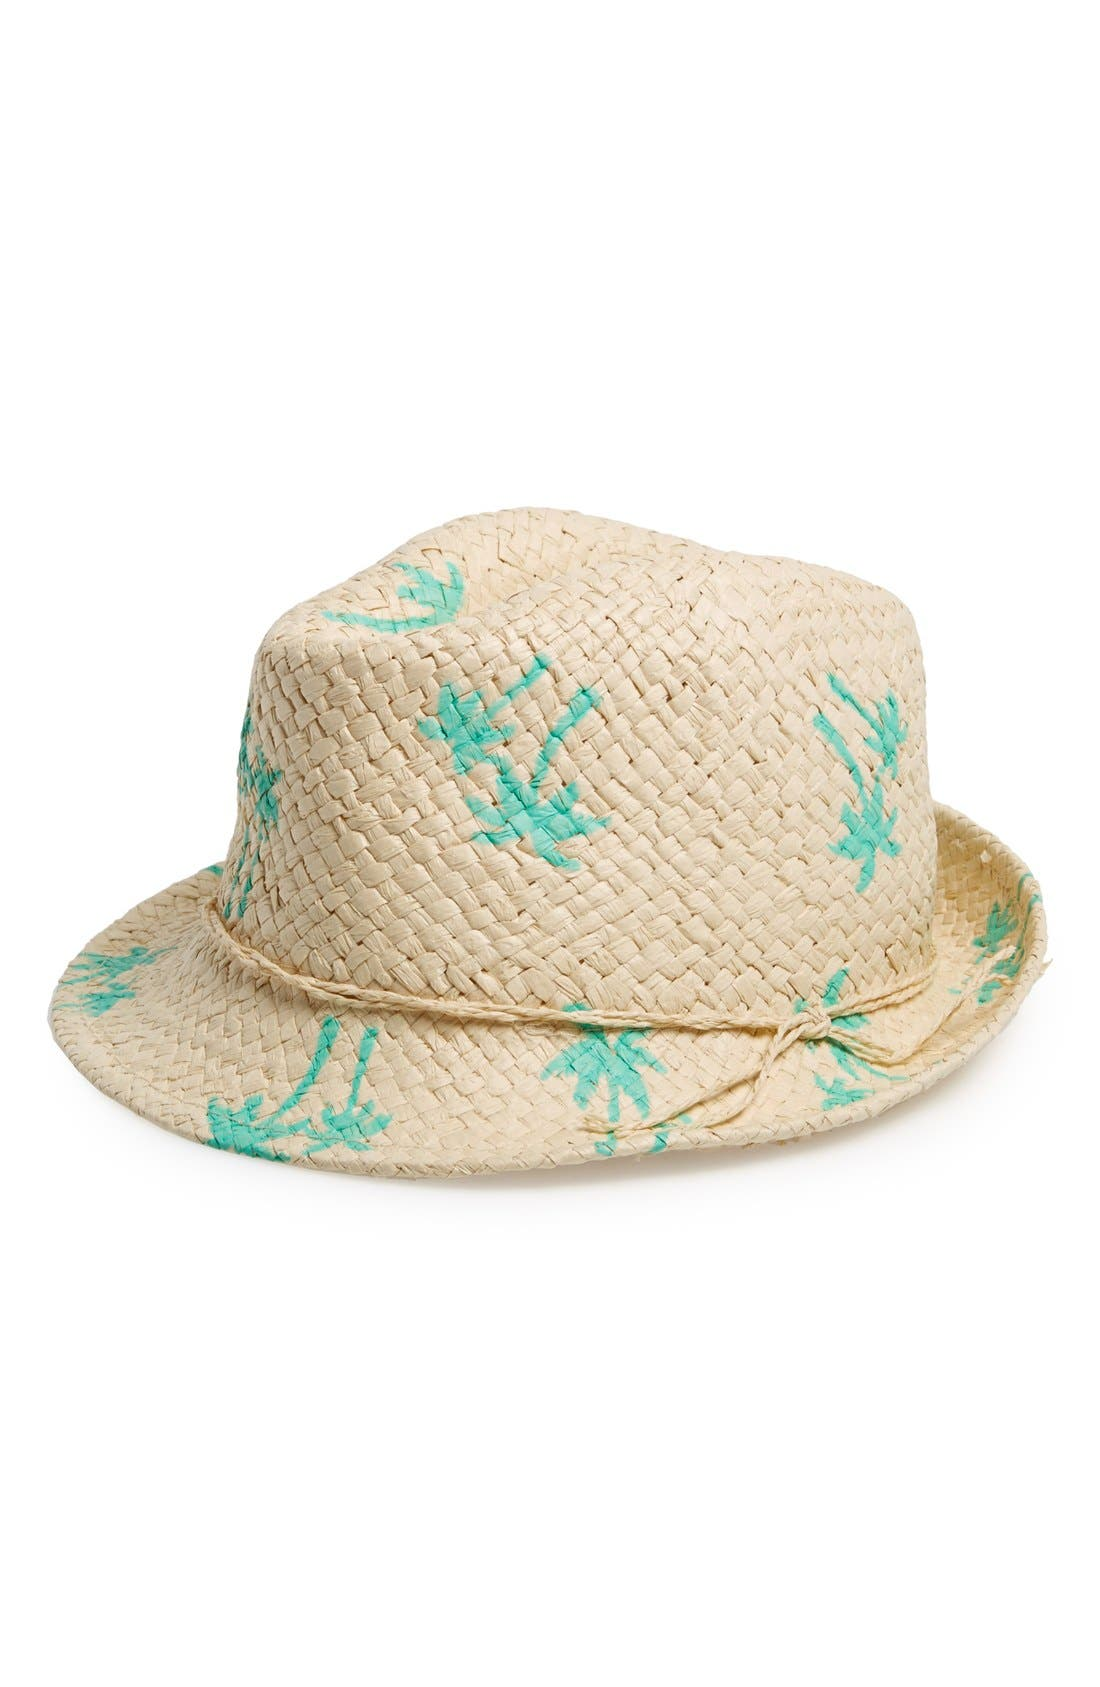 Alternate Image 1 Selected - David & Young Print Straw Fedora